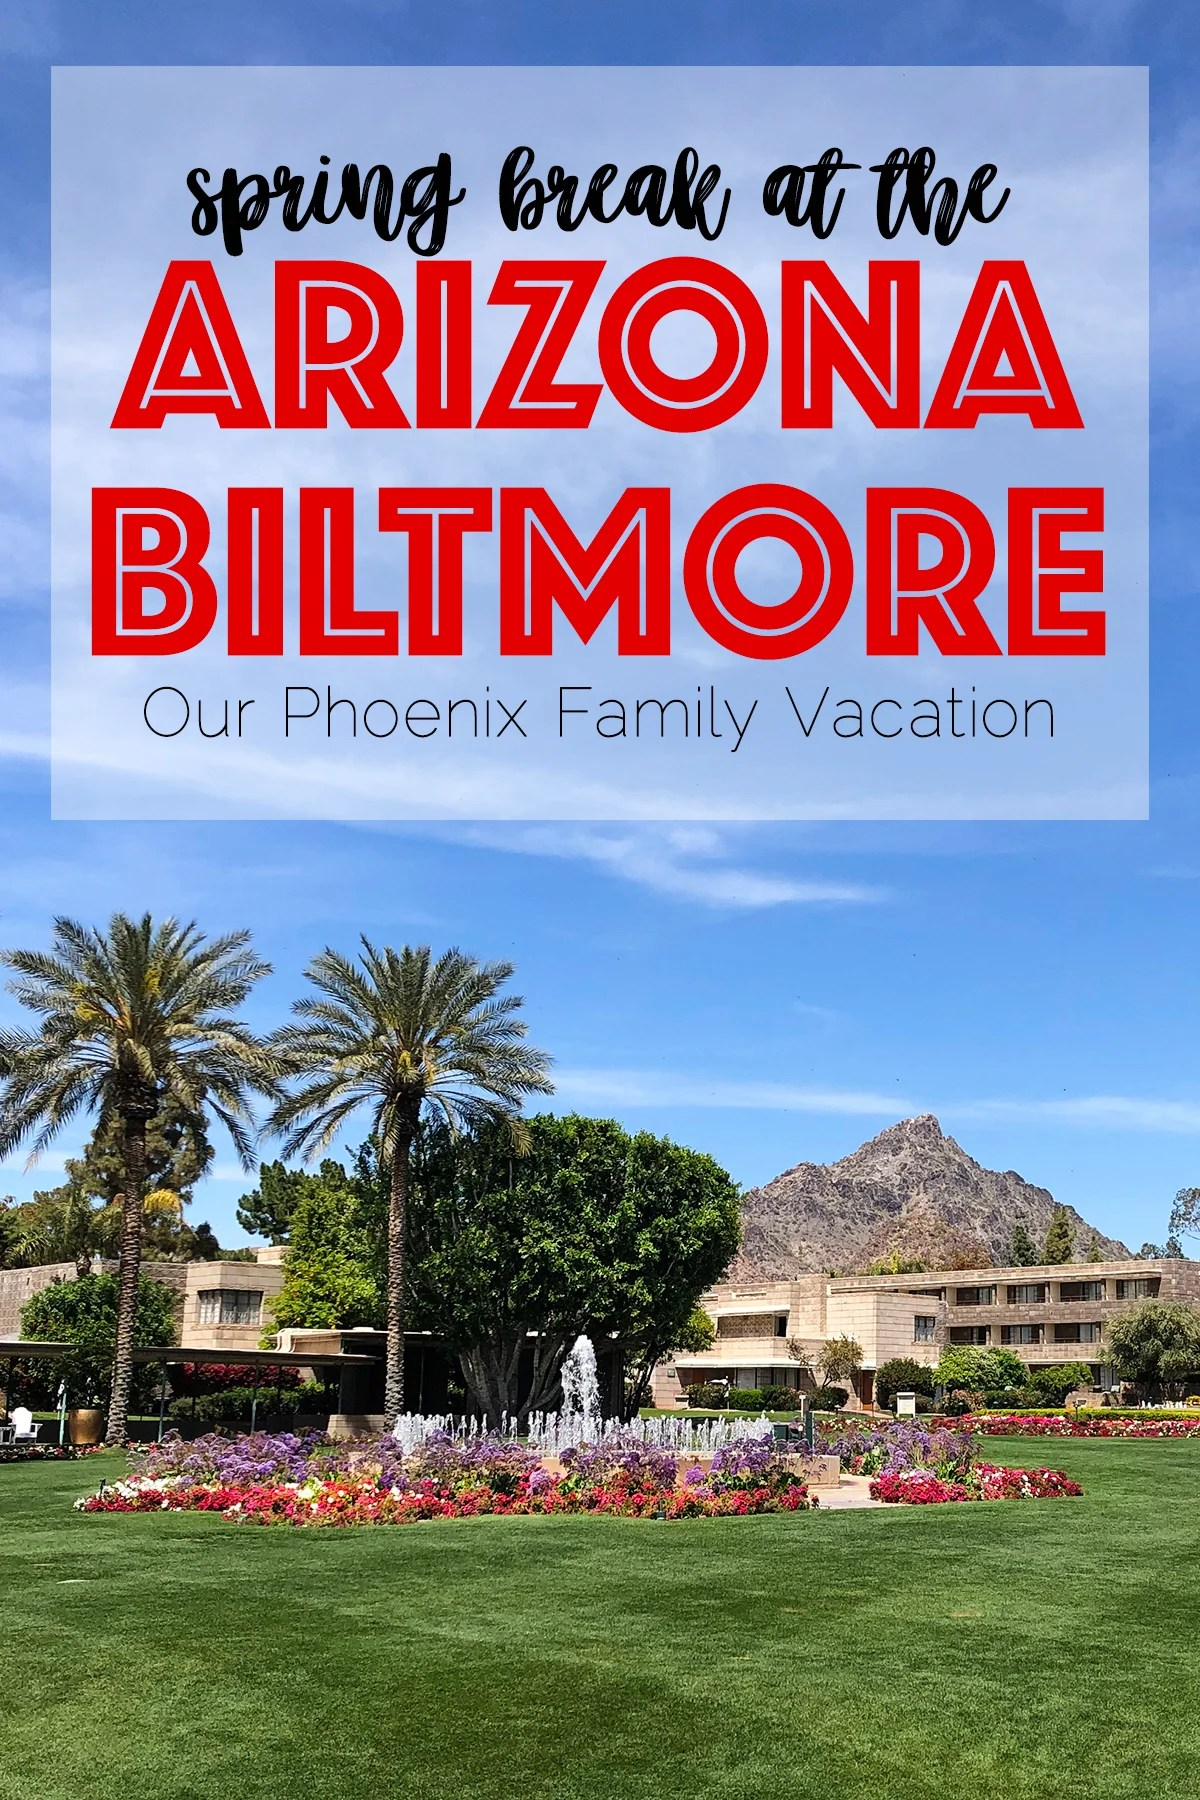 Biltmore Hotel Arizona : Phoenix Family Vacation